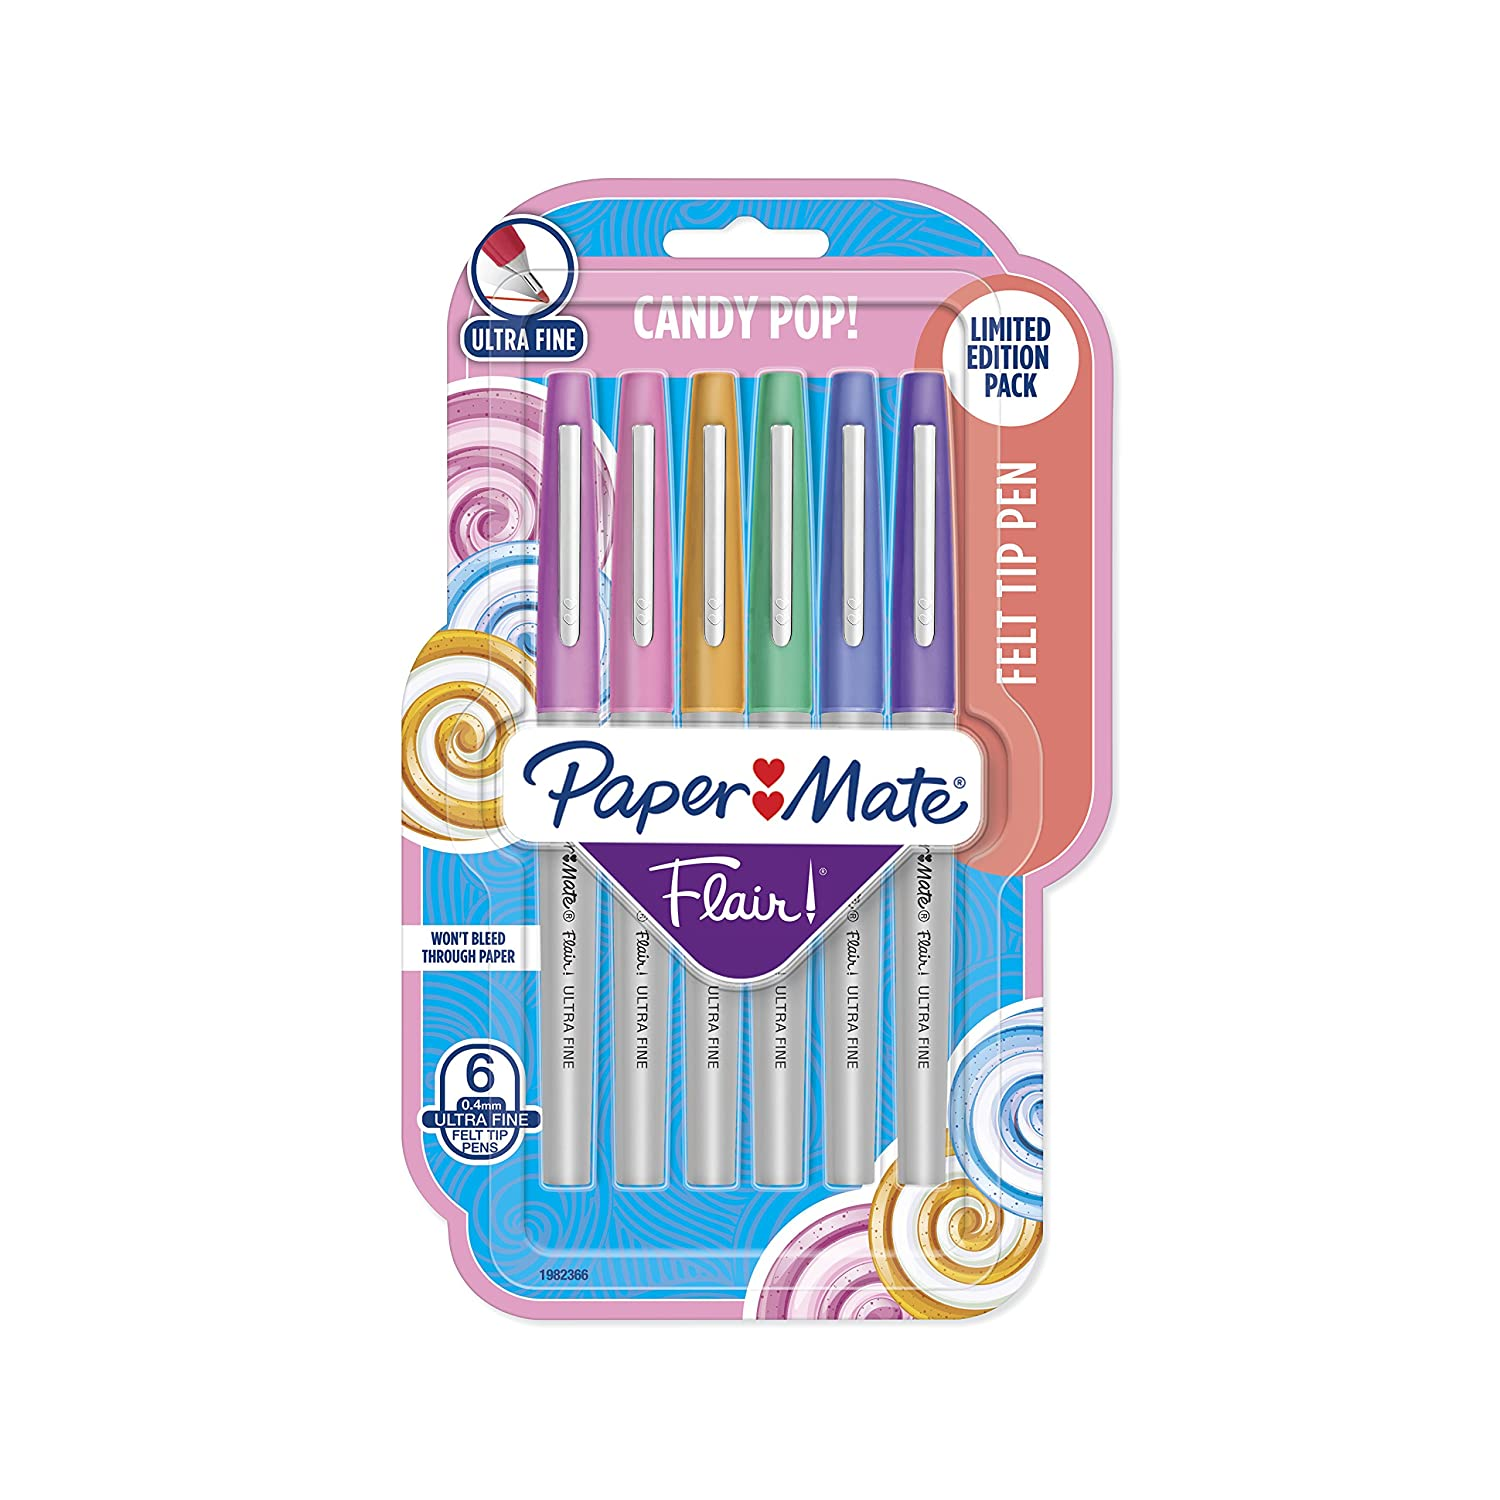 Paper Mate Flair Felt Tip Pens Limited Edition Candy Pop Pack 0.4mm Ultra Fine Point